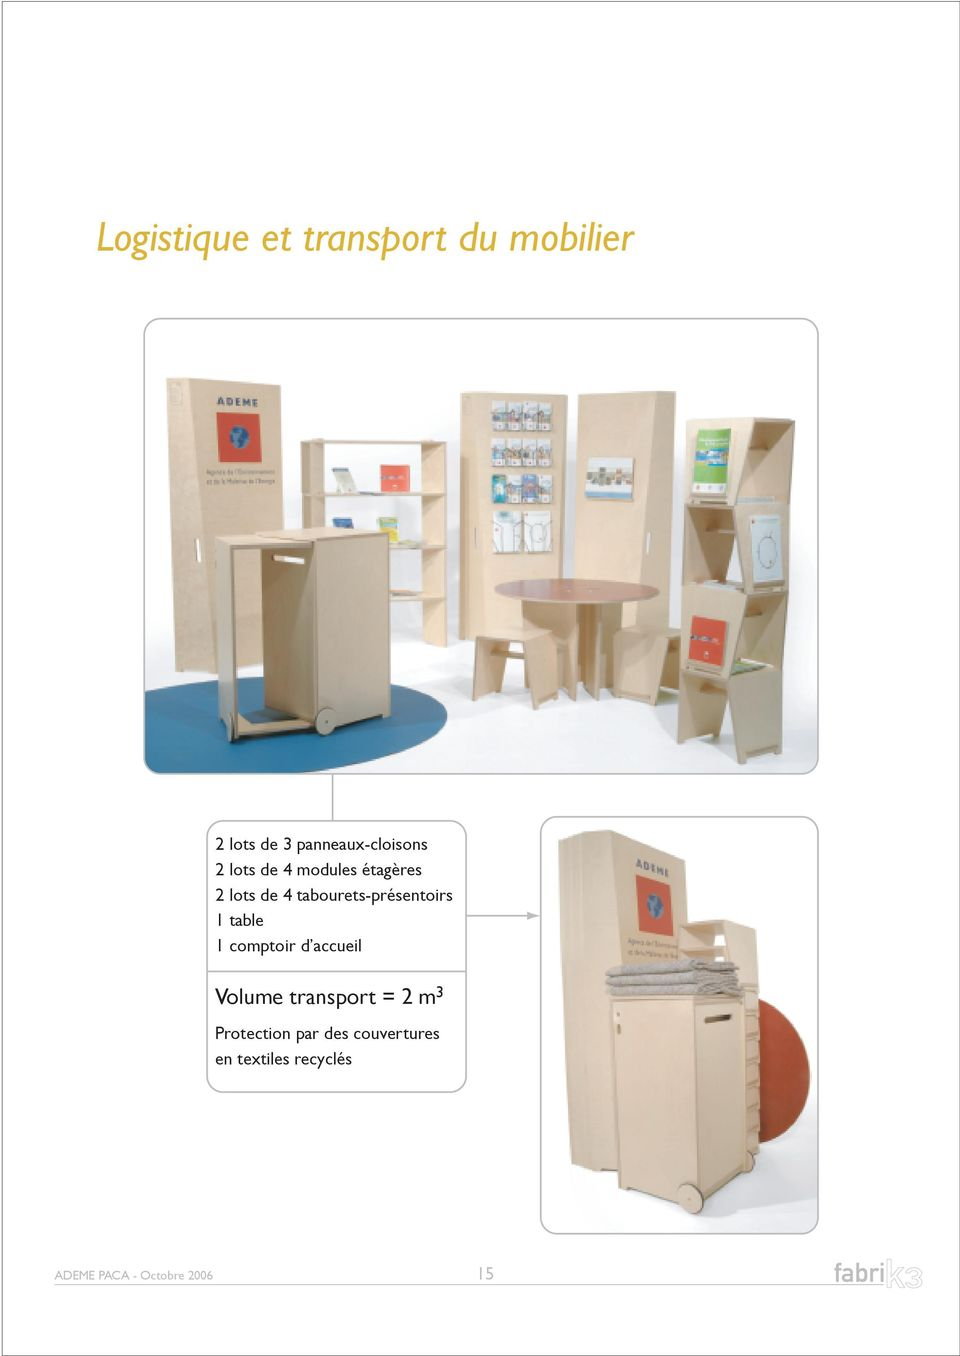 table 1 comptoir d accueil Volume transport = 2 m 3 Protection